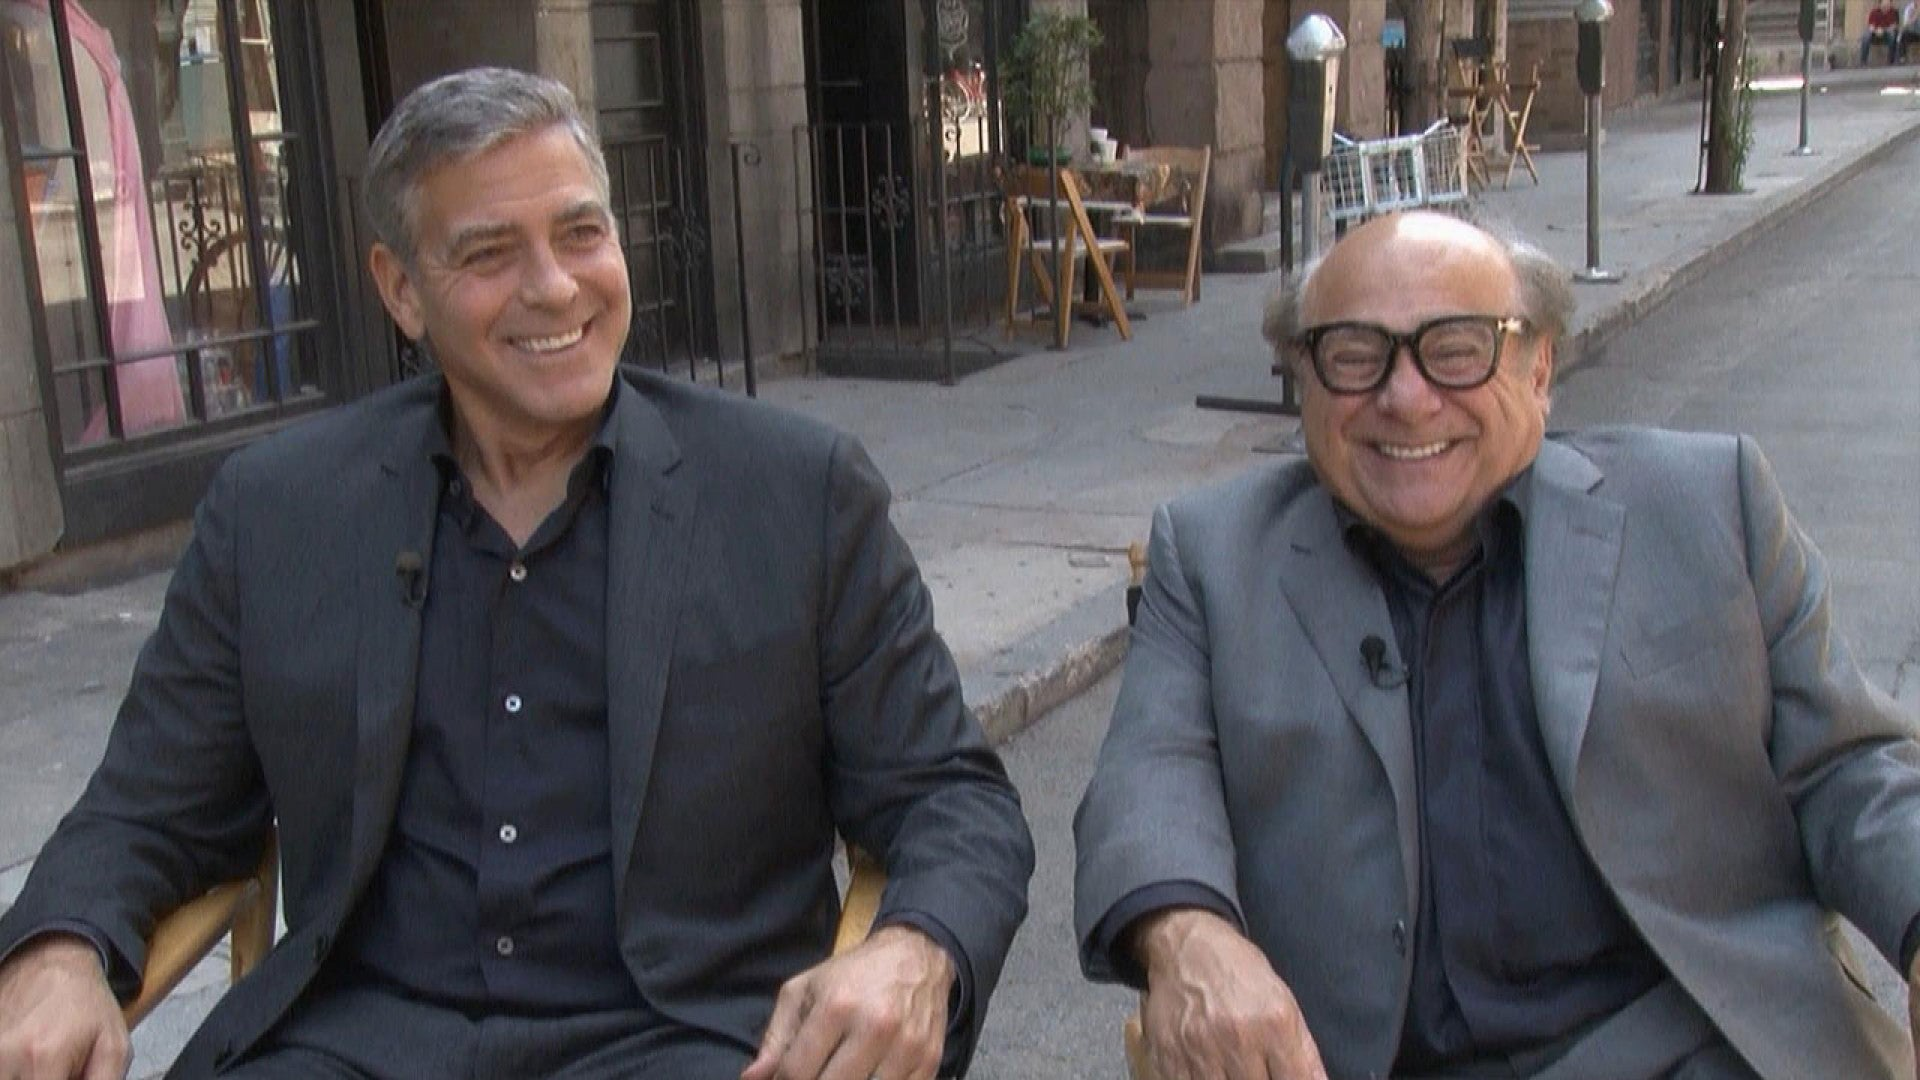 g3 20 Things You Might Not Have Realised About Danny DeVito